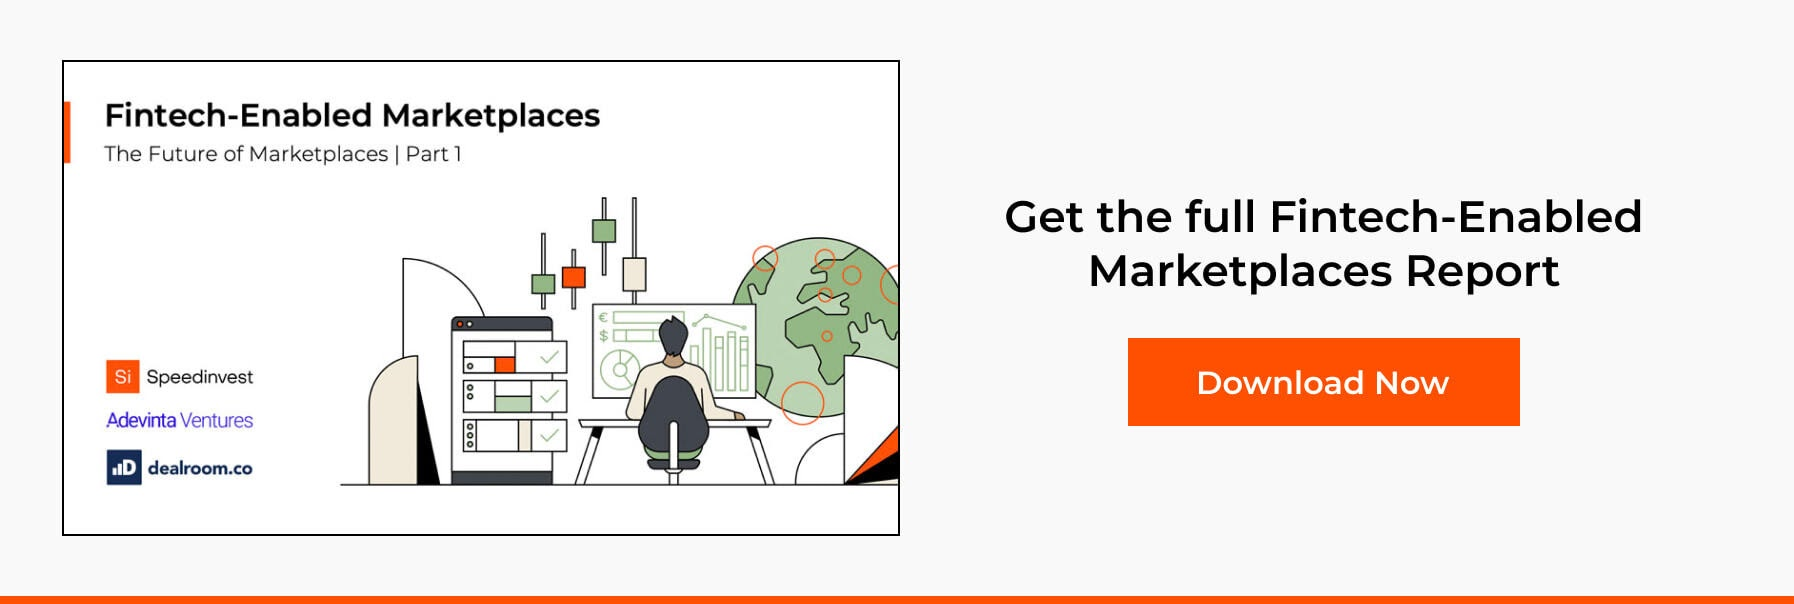 Link to download the Fintech-Enabled Marketplaces Report by Speedinvest's Marketplaces & Consumer team